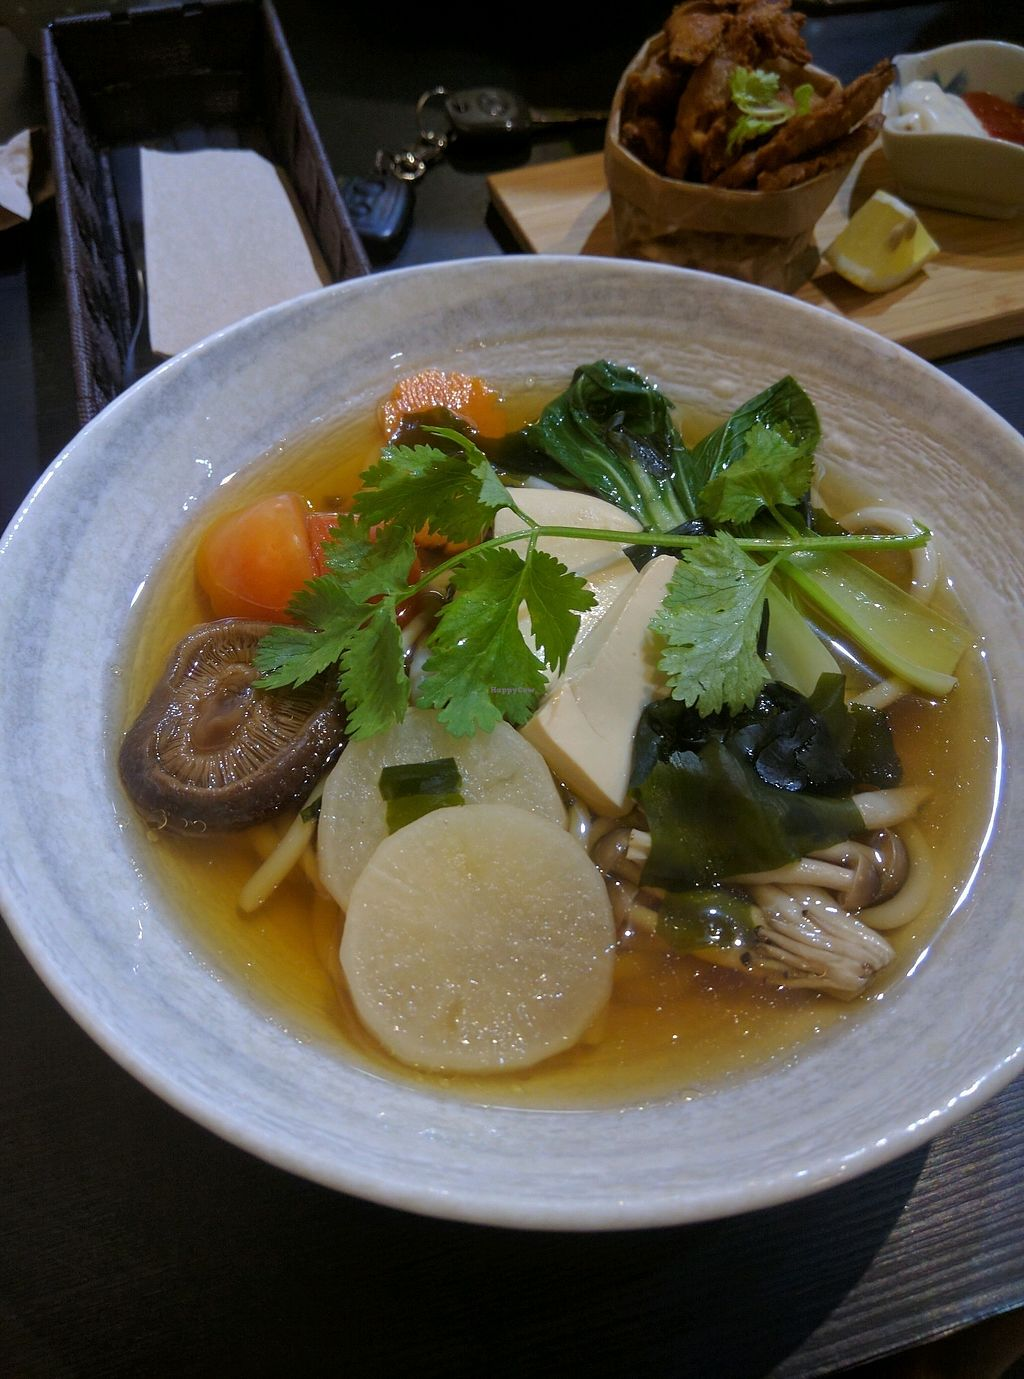 "Photo of Yi Ke Shu - Bayan Lepas  by <a href=""/members/profile/Summer_Tan"">Summer_Tan</a> <br/>Vegan Japanese Udon Noodle Soup - RM14.90 It's ok, light and clean broth, but nothing special <br/> January 29, 2018  - <a href='/contact/abuse/image/63320/352149'>Report</a>"